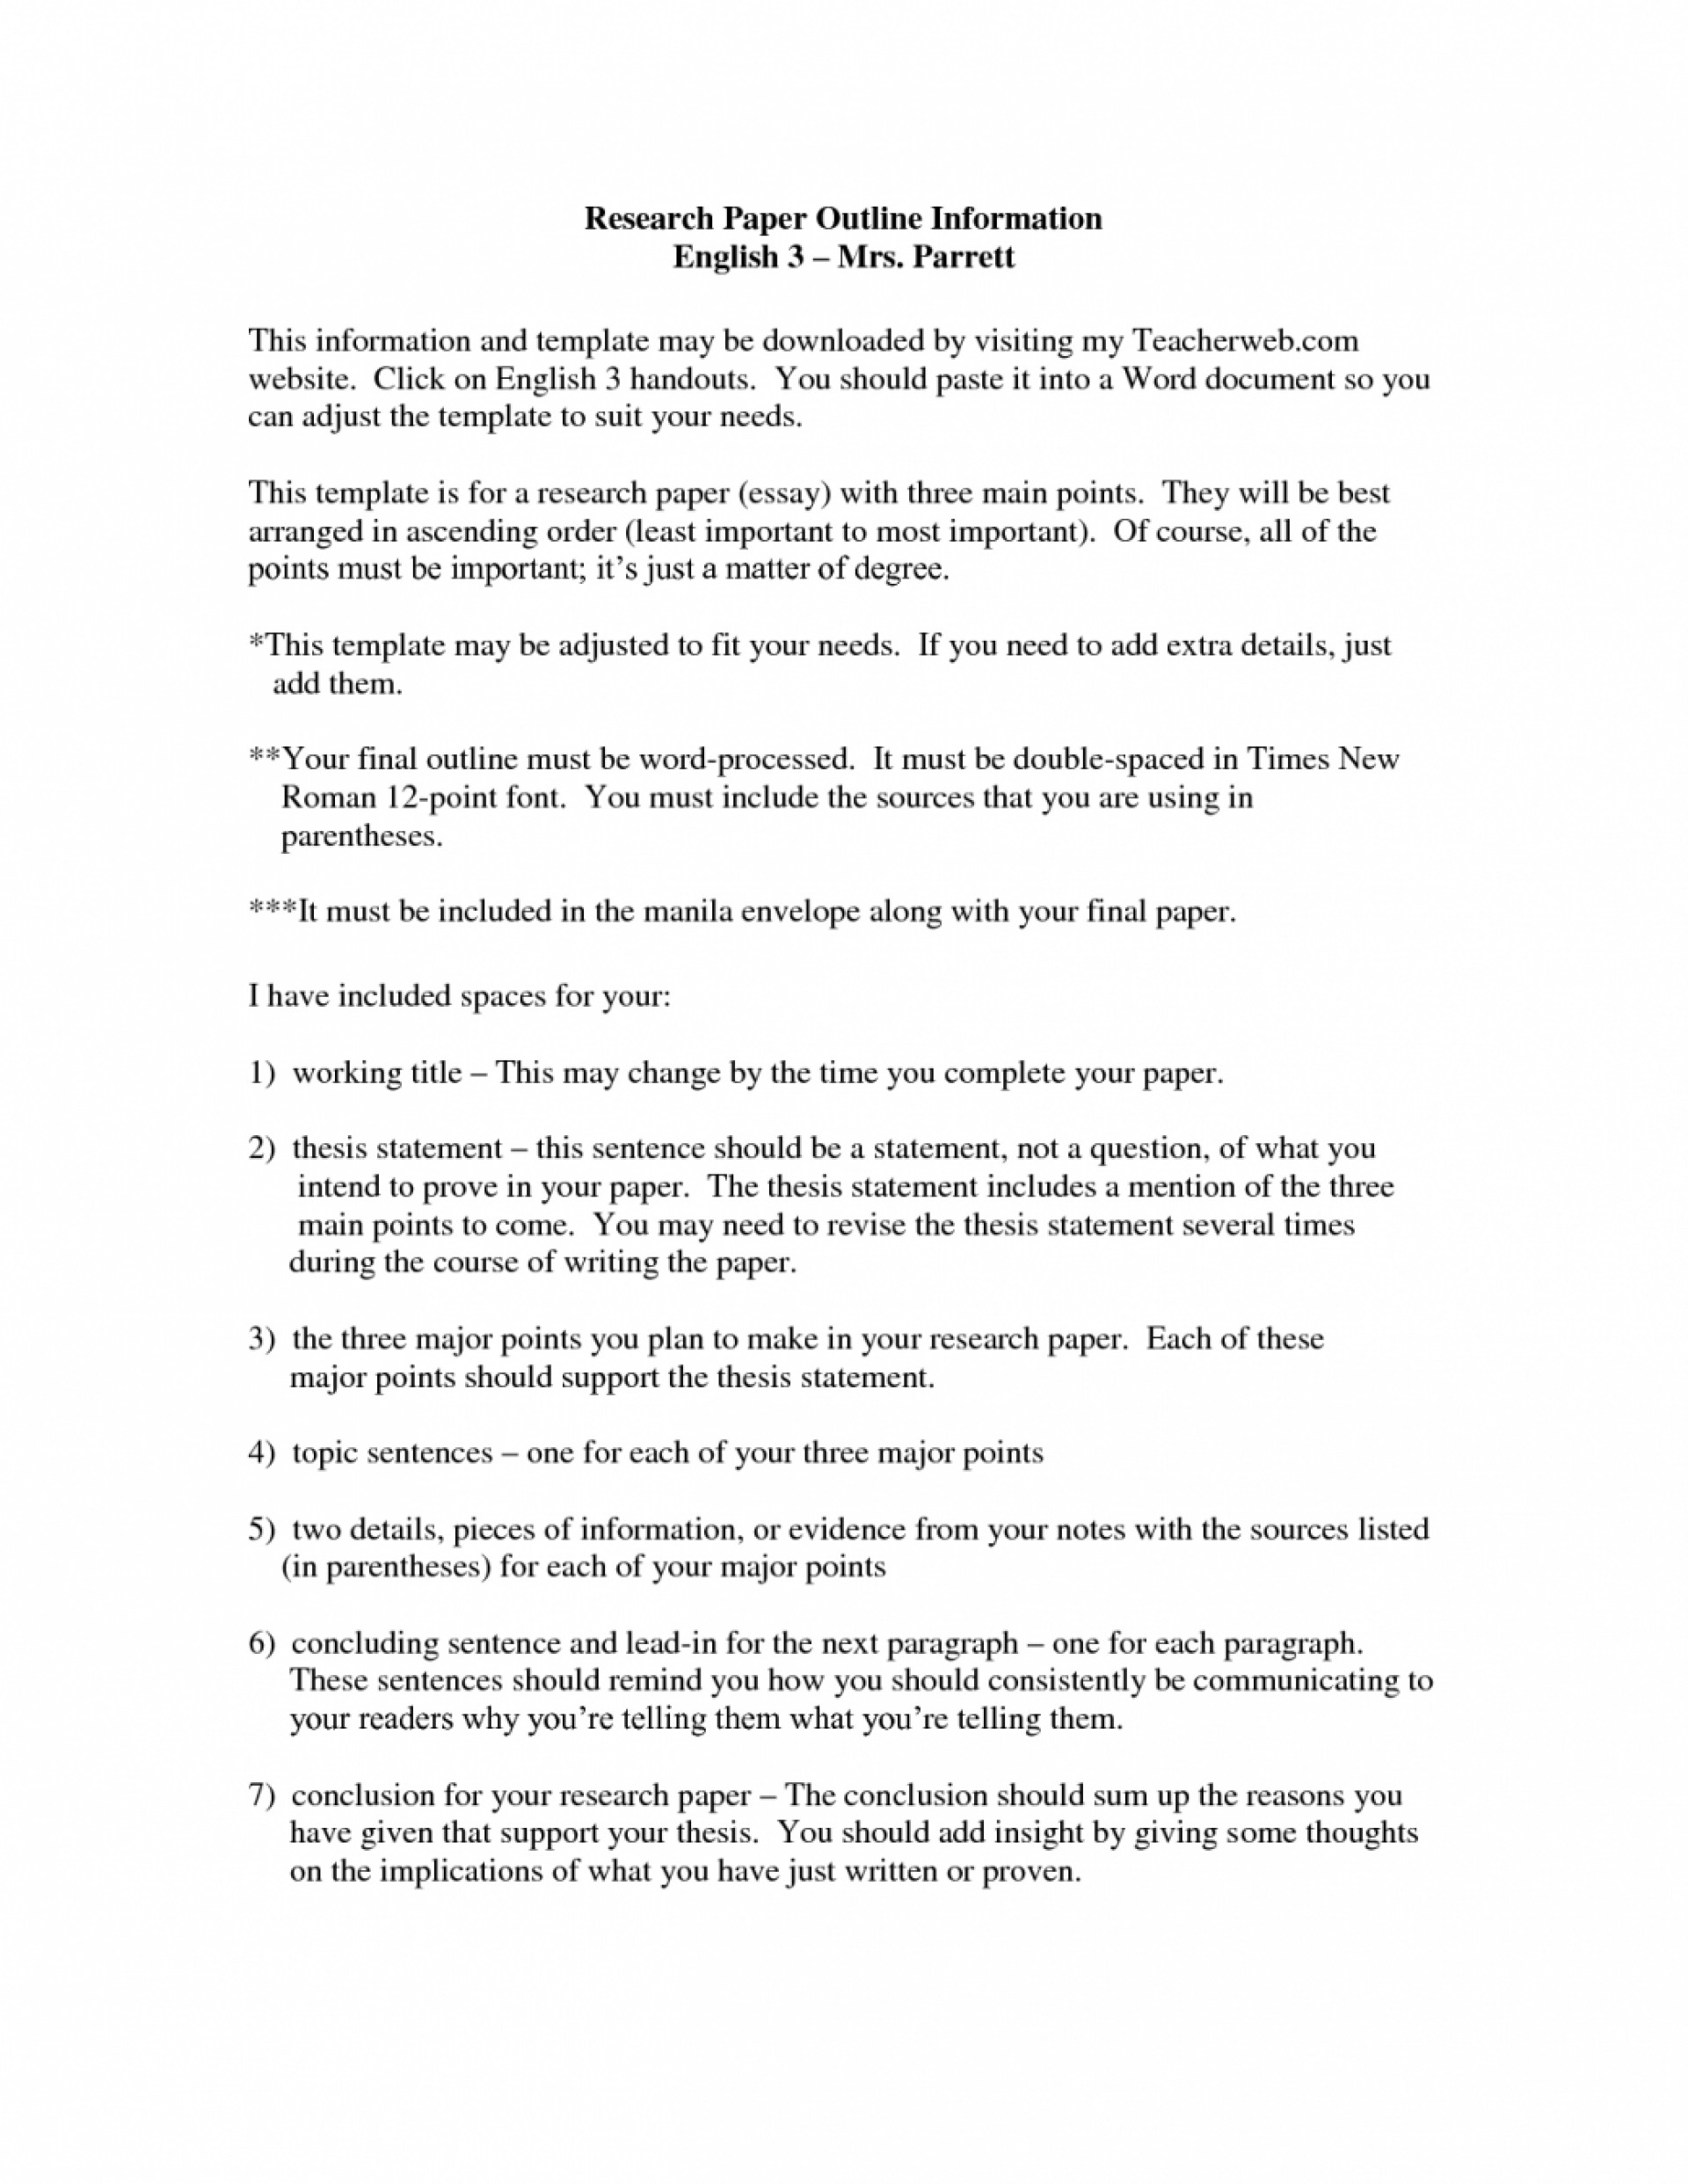 004 Example Of Essay Written In Apa Format Outstanding Image Inspirations Sample Paper Scholarly Reaction Examples 1038x1343 Research Unique Career 1920